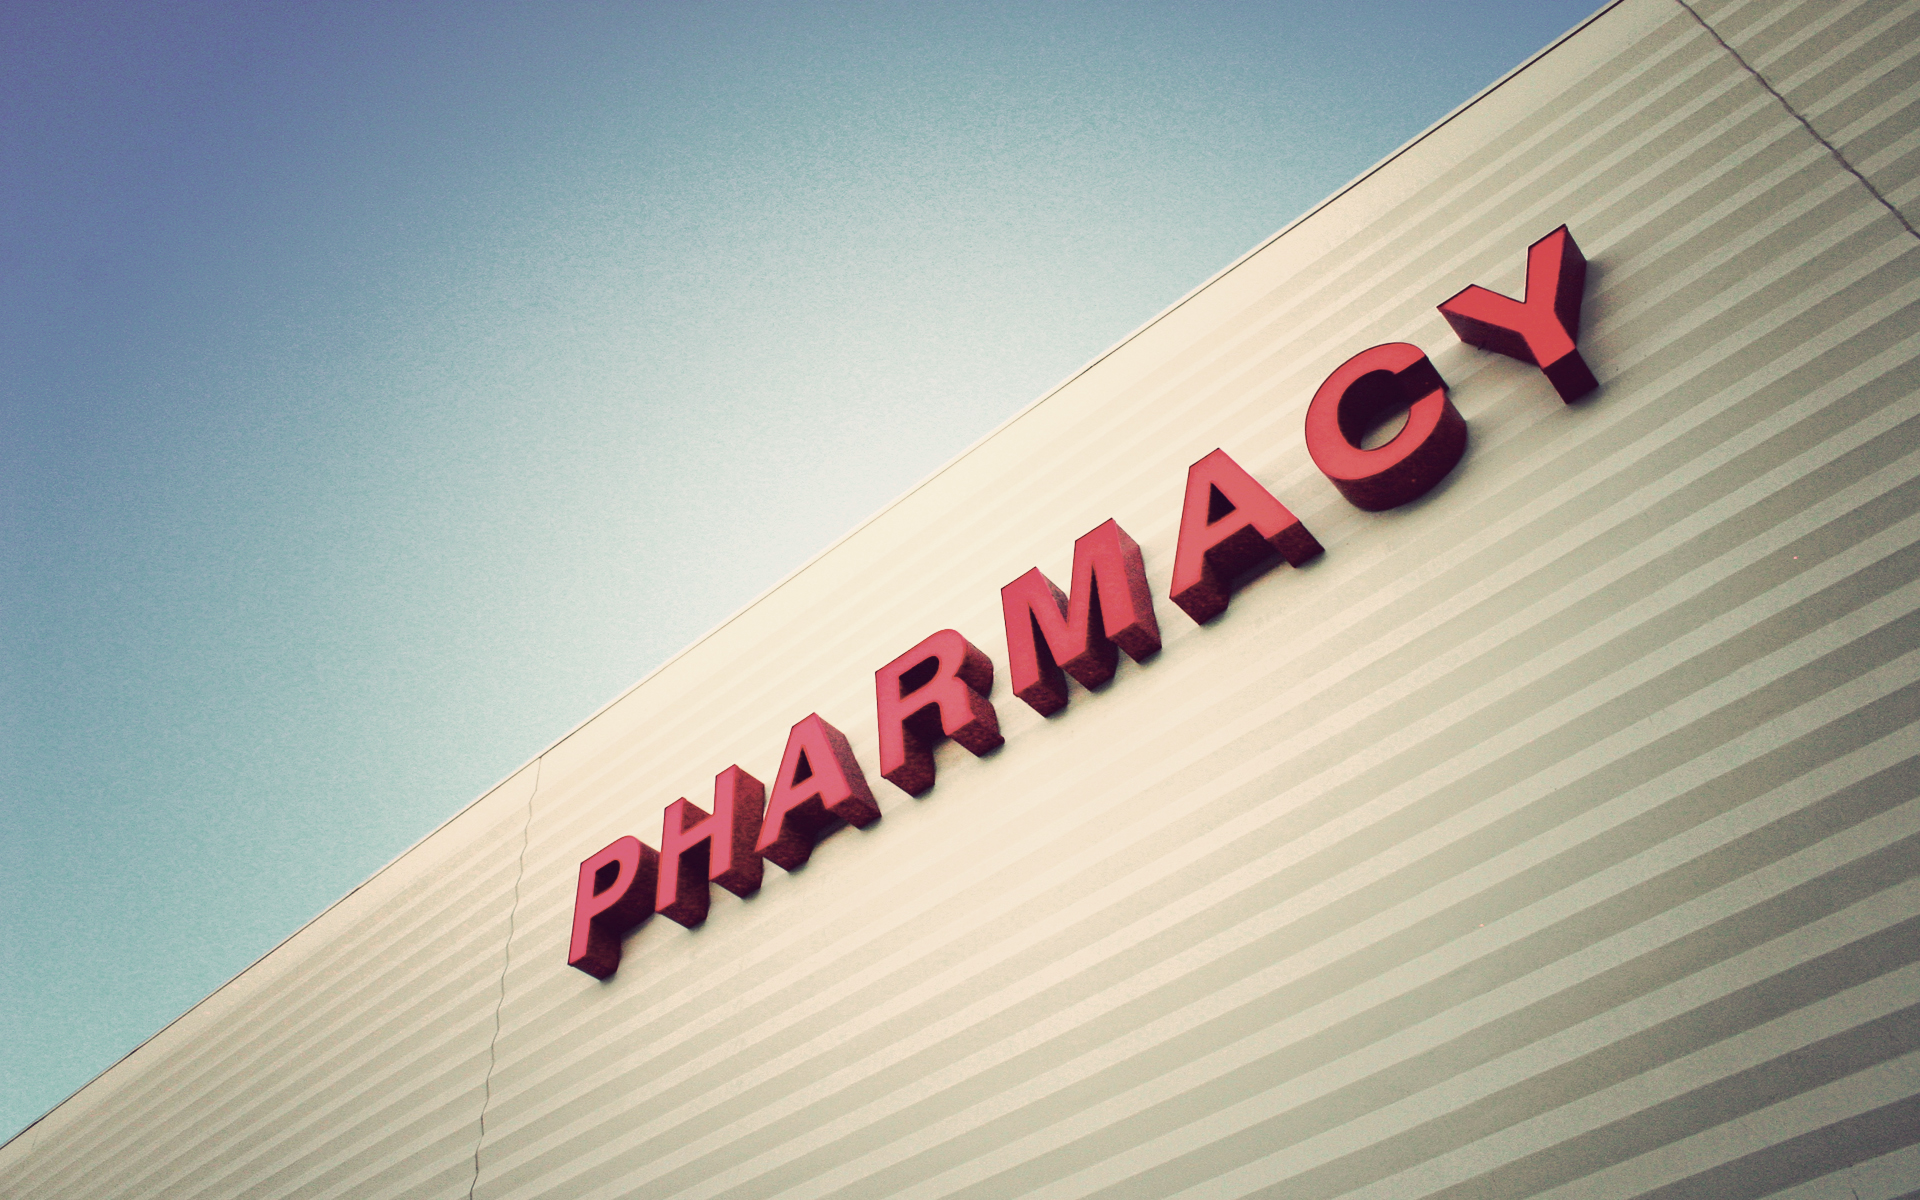 Pharmacy Hd Wallpaper Top Pictures Gallery Online 1920x1200